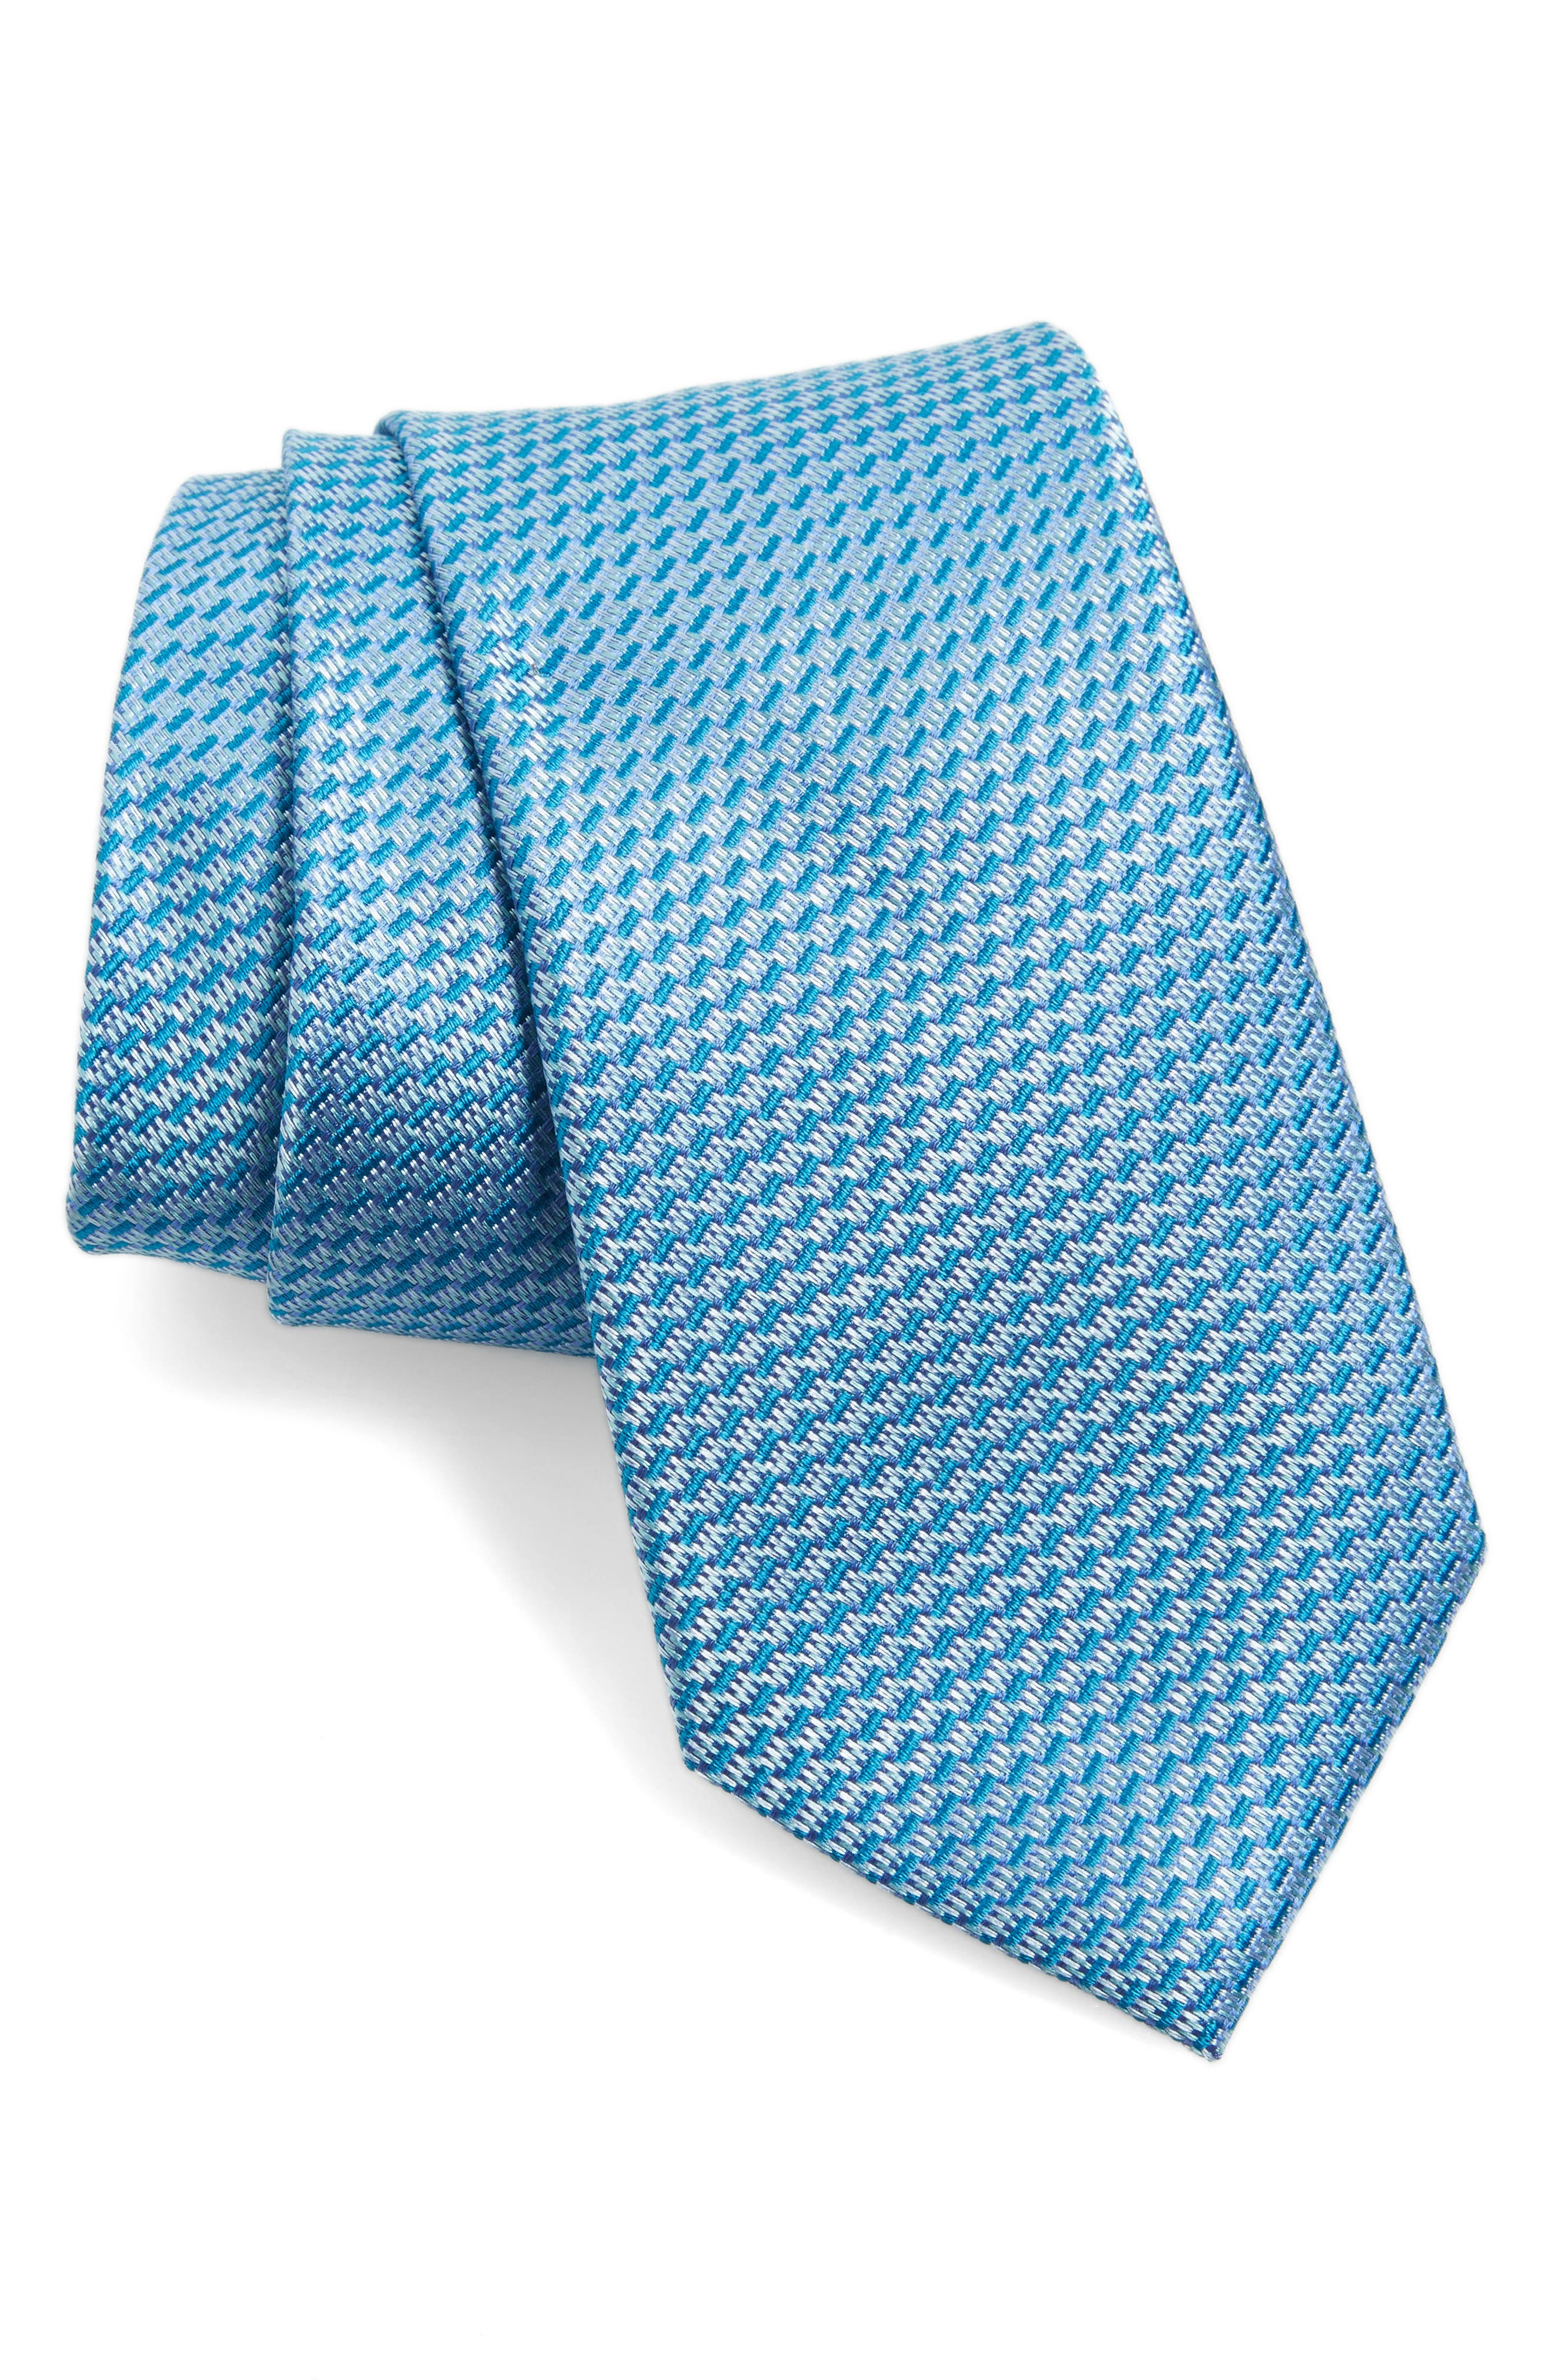 Solid Silk Tie,                             Main thumbnail 1, color,                             Teal